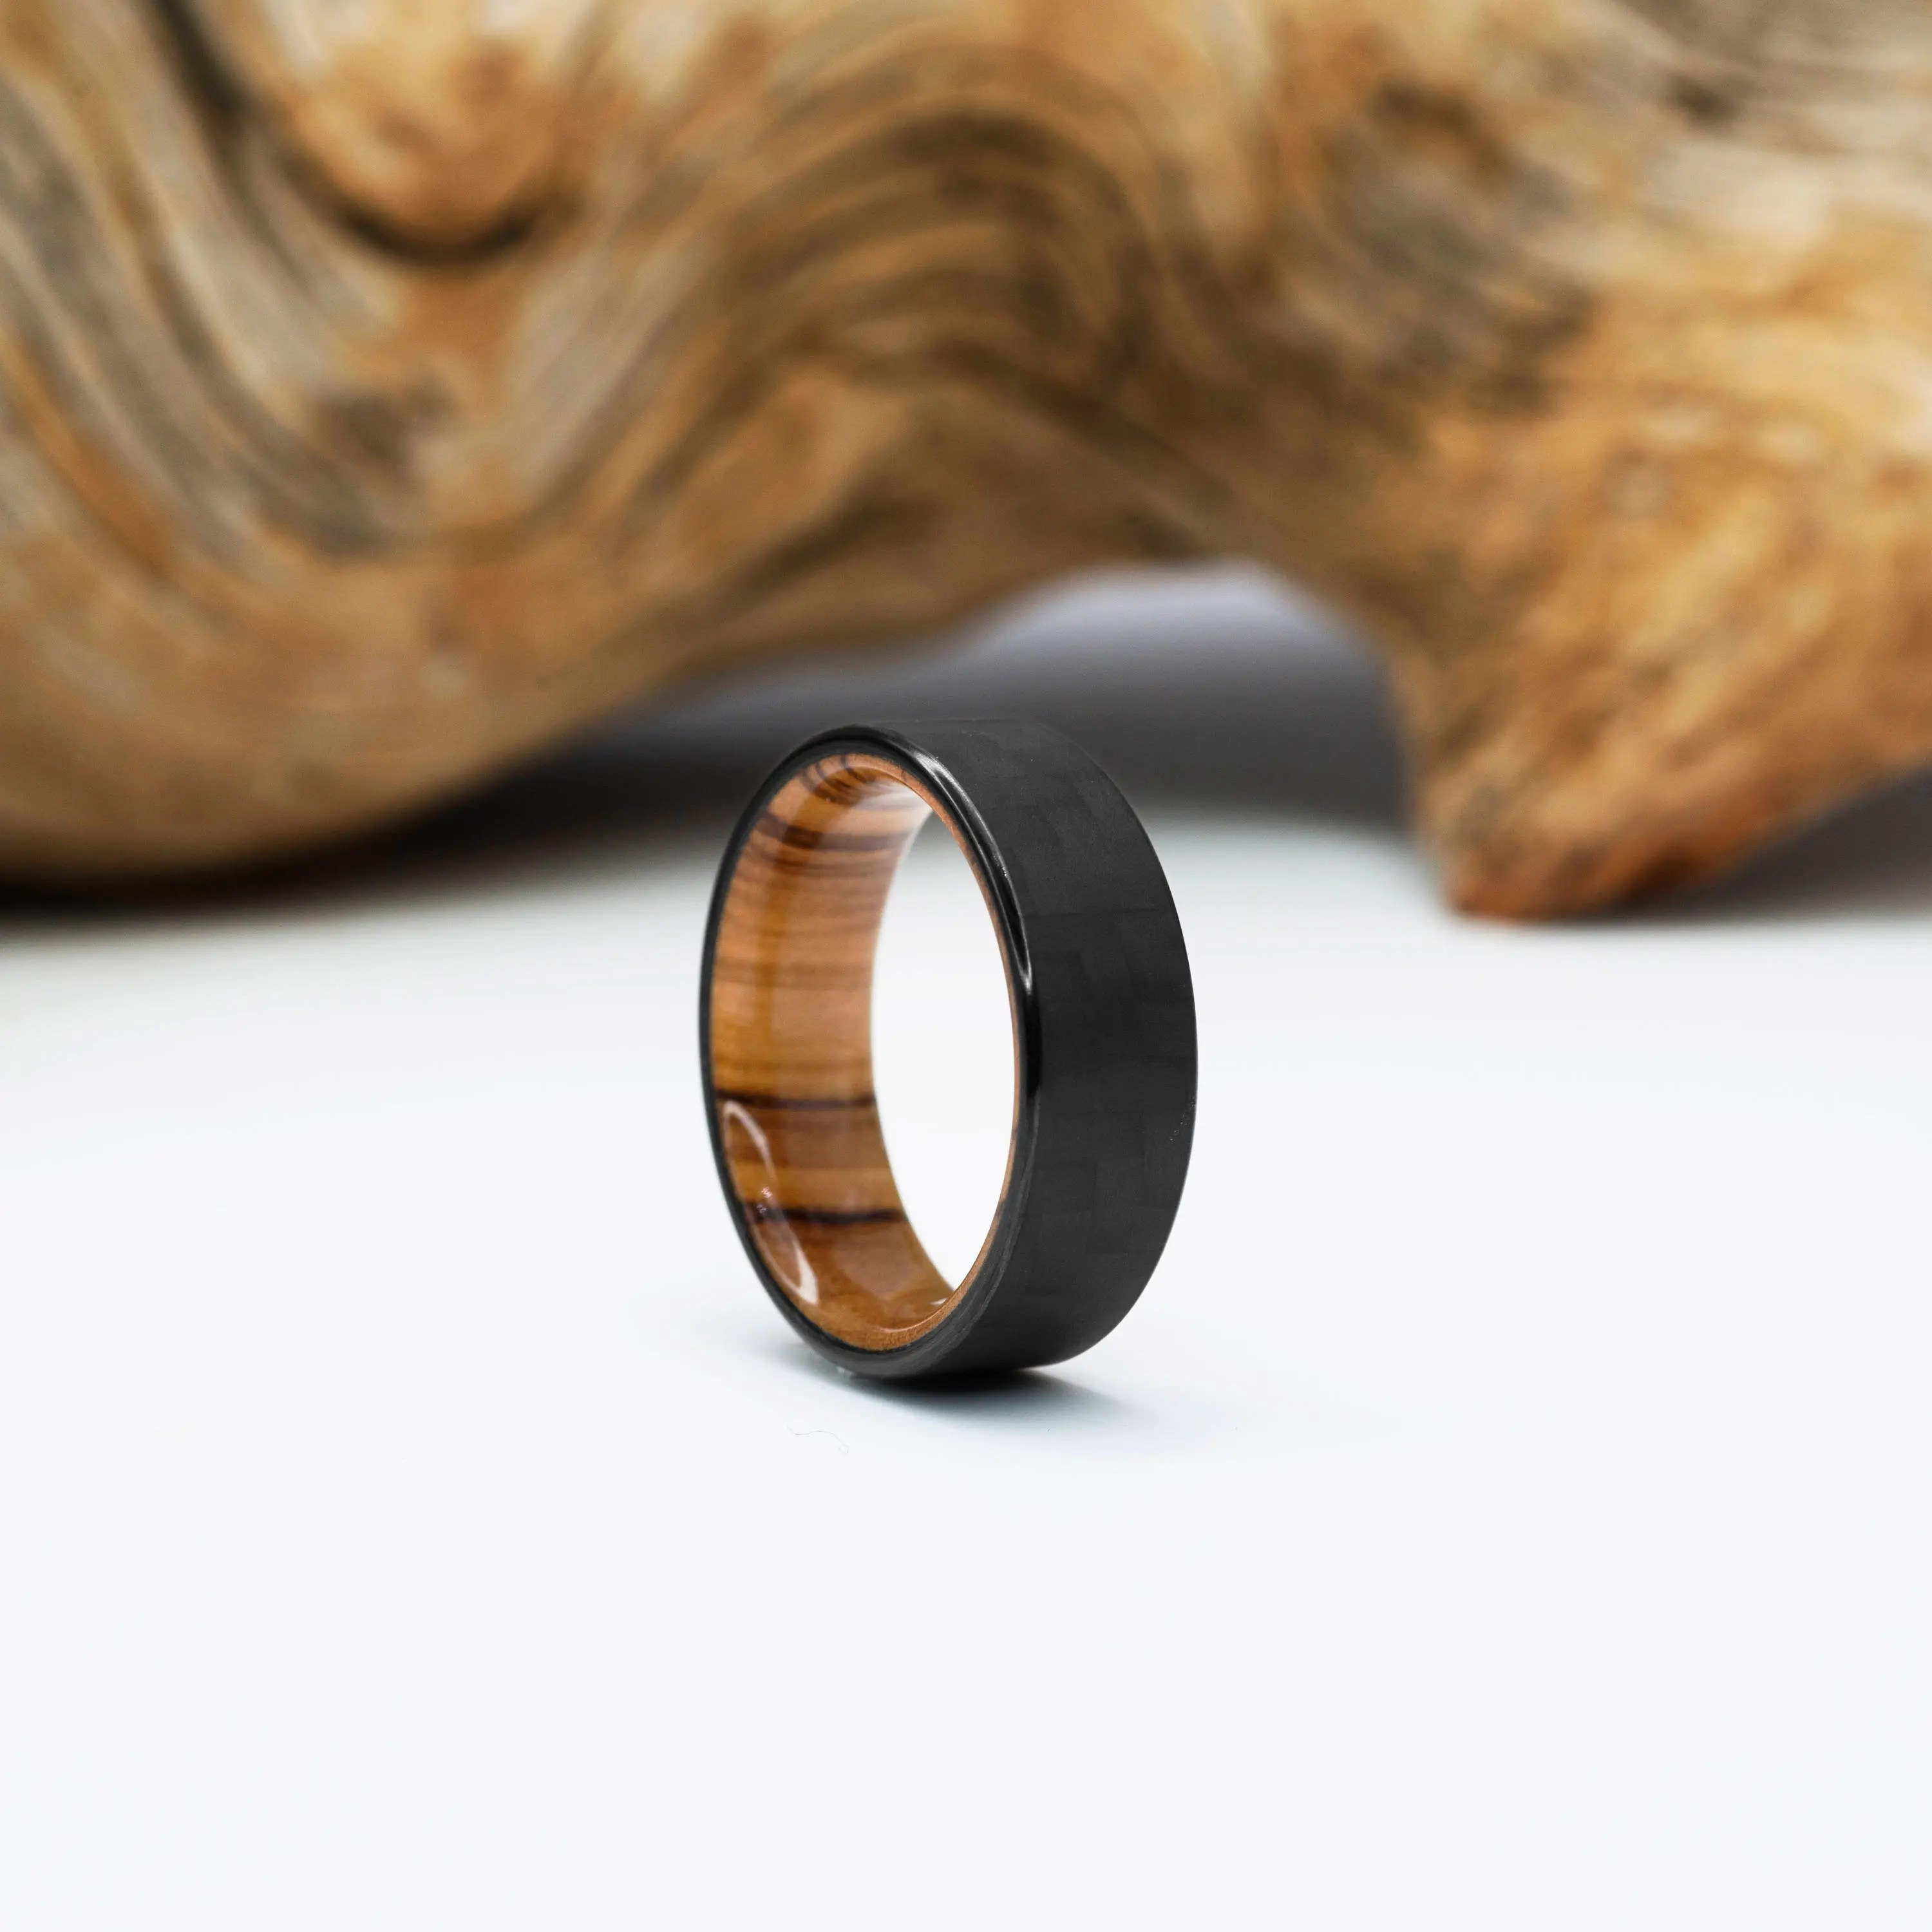 carbon fiber and olivewood ring wood wedding band mens ring waterproof finish